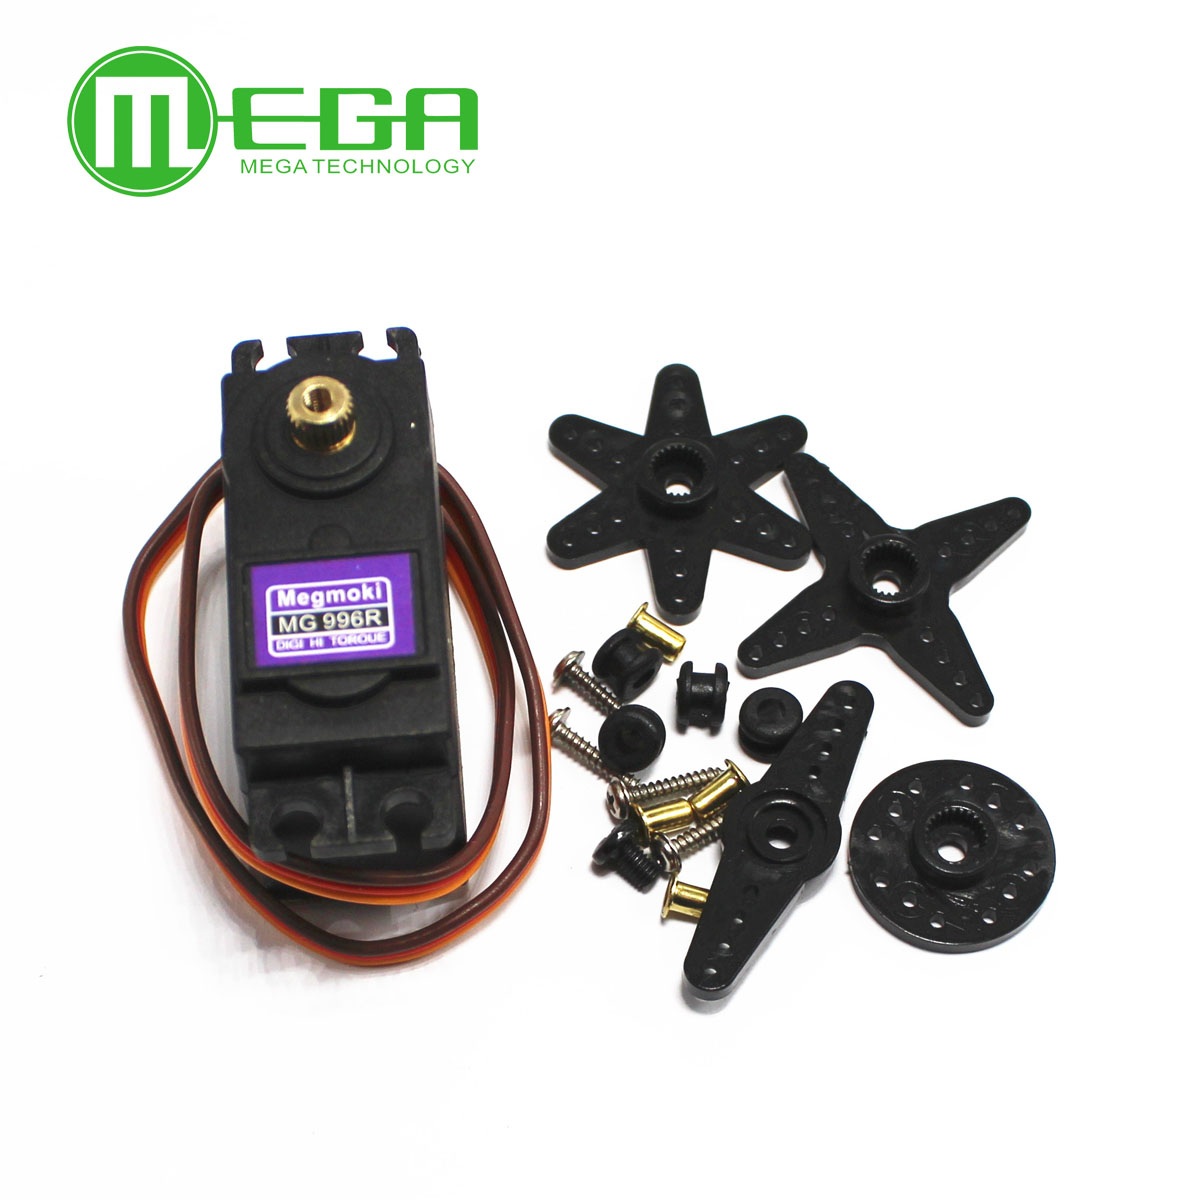 13KG 15KG Servos Digital MG995 MG996 Servo Metal Gear for Futaba JR Car RC Model Helicopter Boat13KG 15KG Servos Digital MG995 MG996 Servo Metal Gear for Futaba JR Car RC Model Helicopter Boat